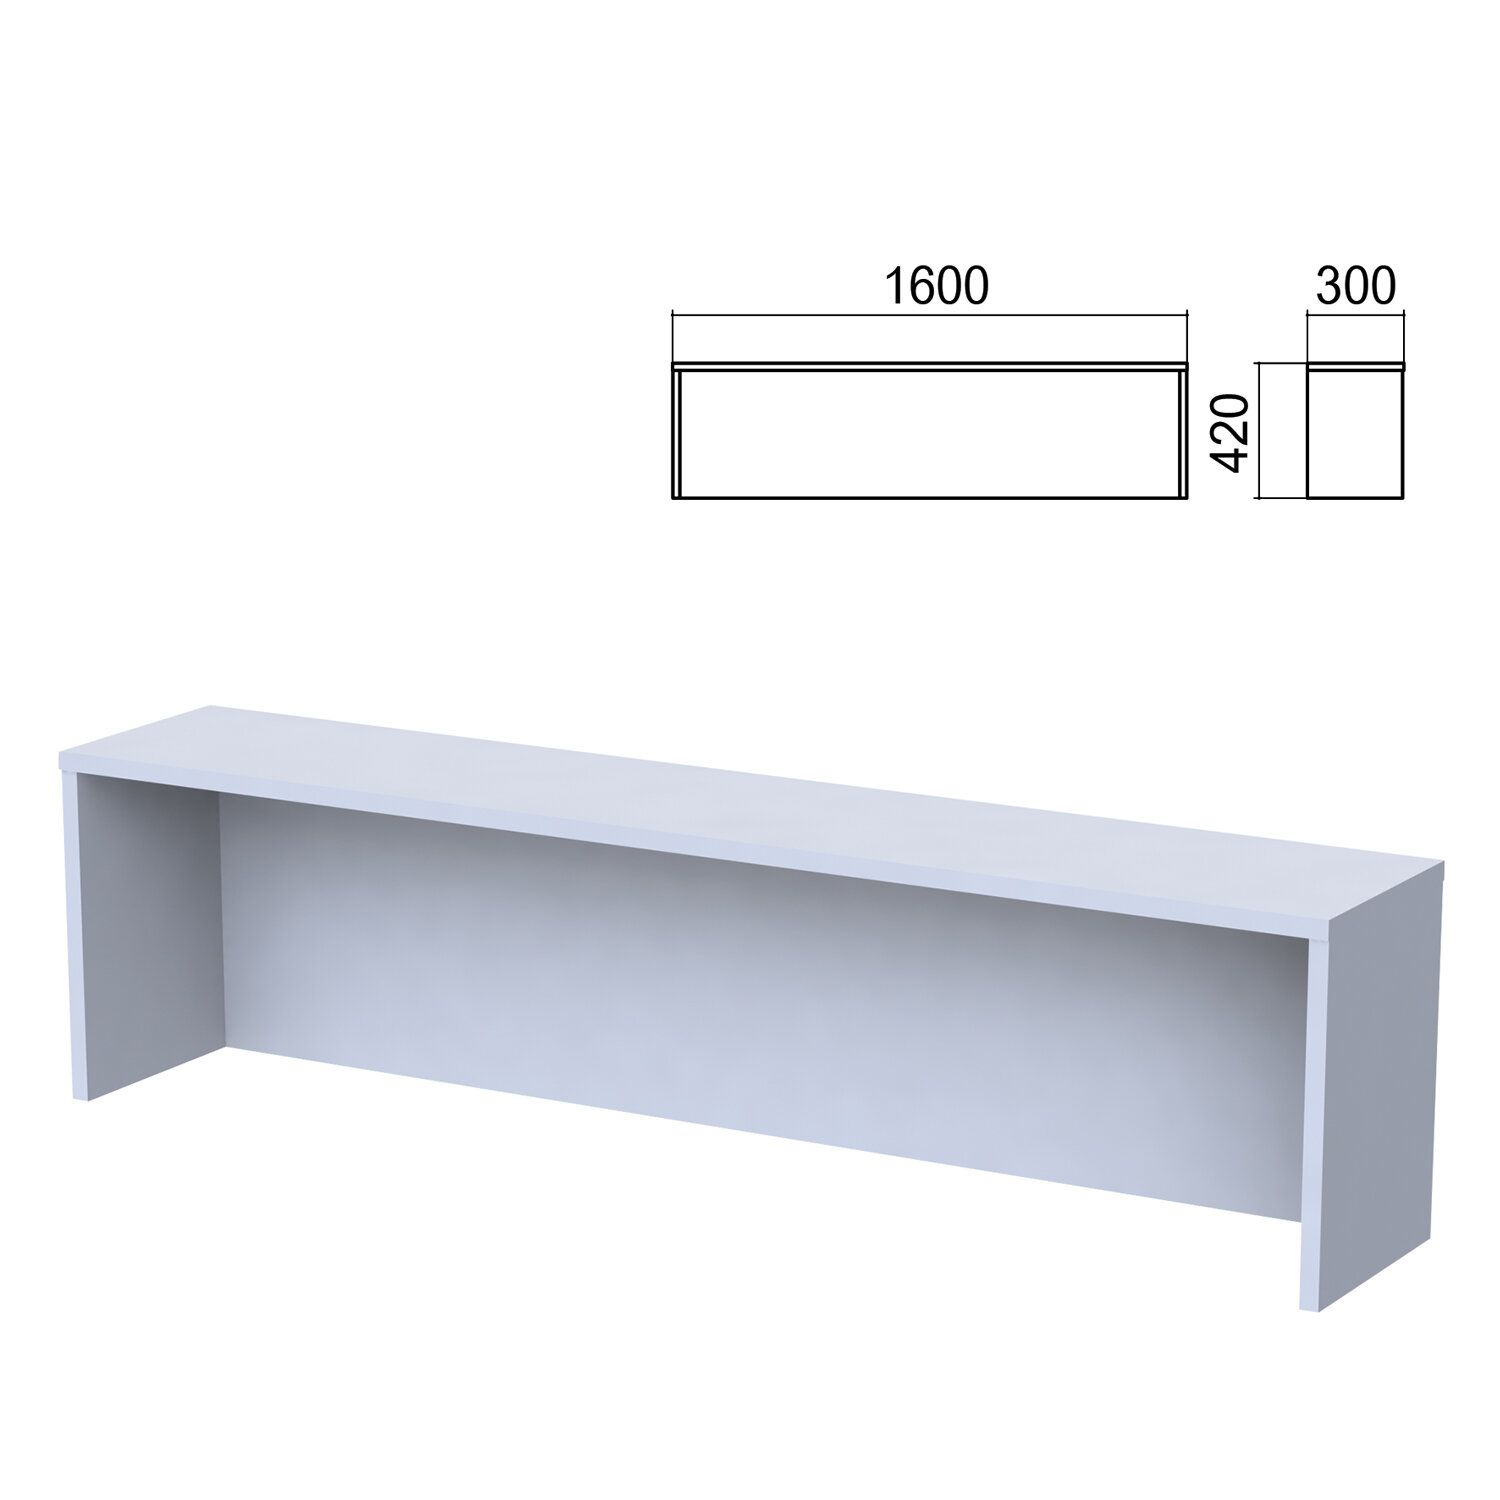 Argo table add-on, 1600 mm wide, grey